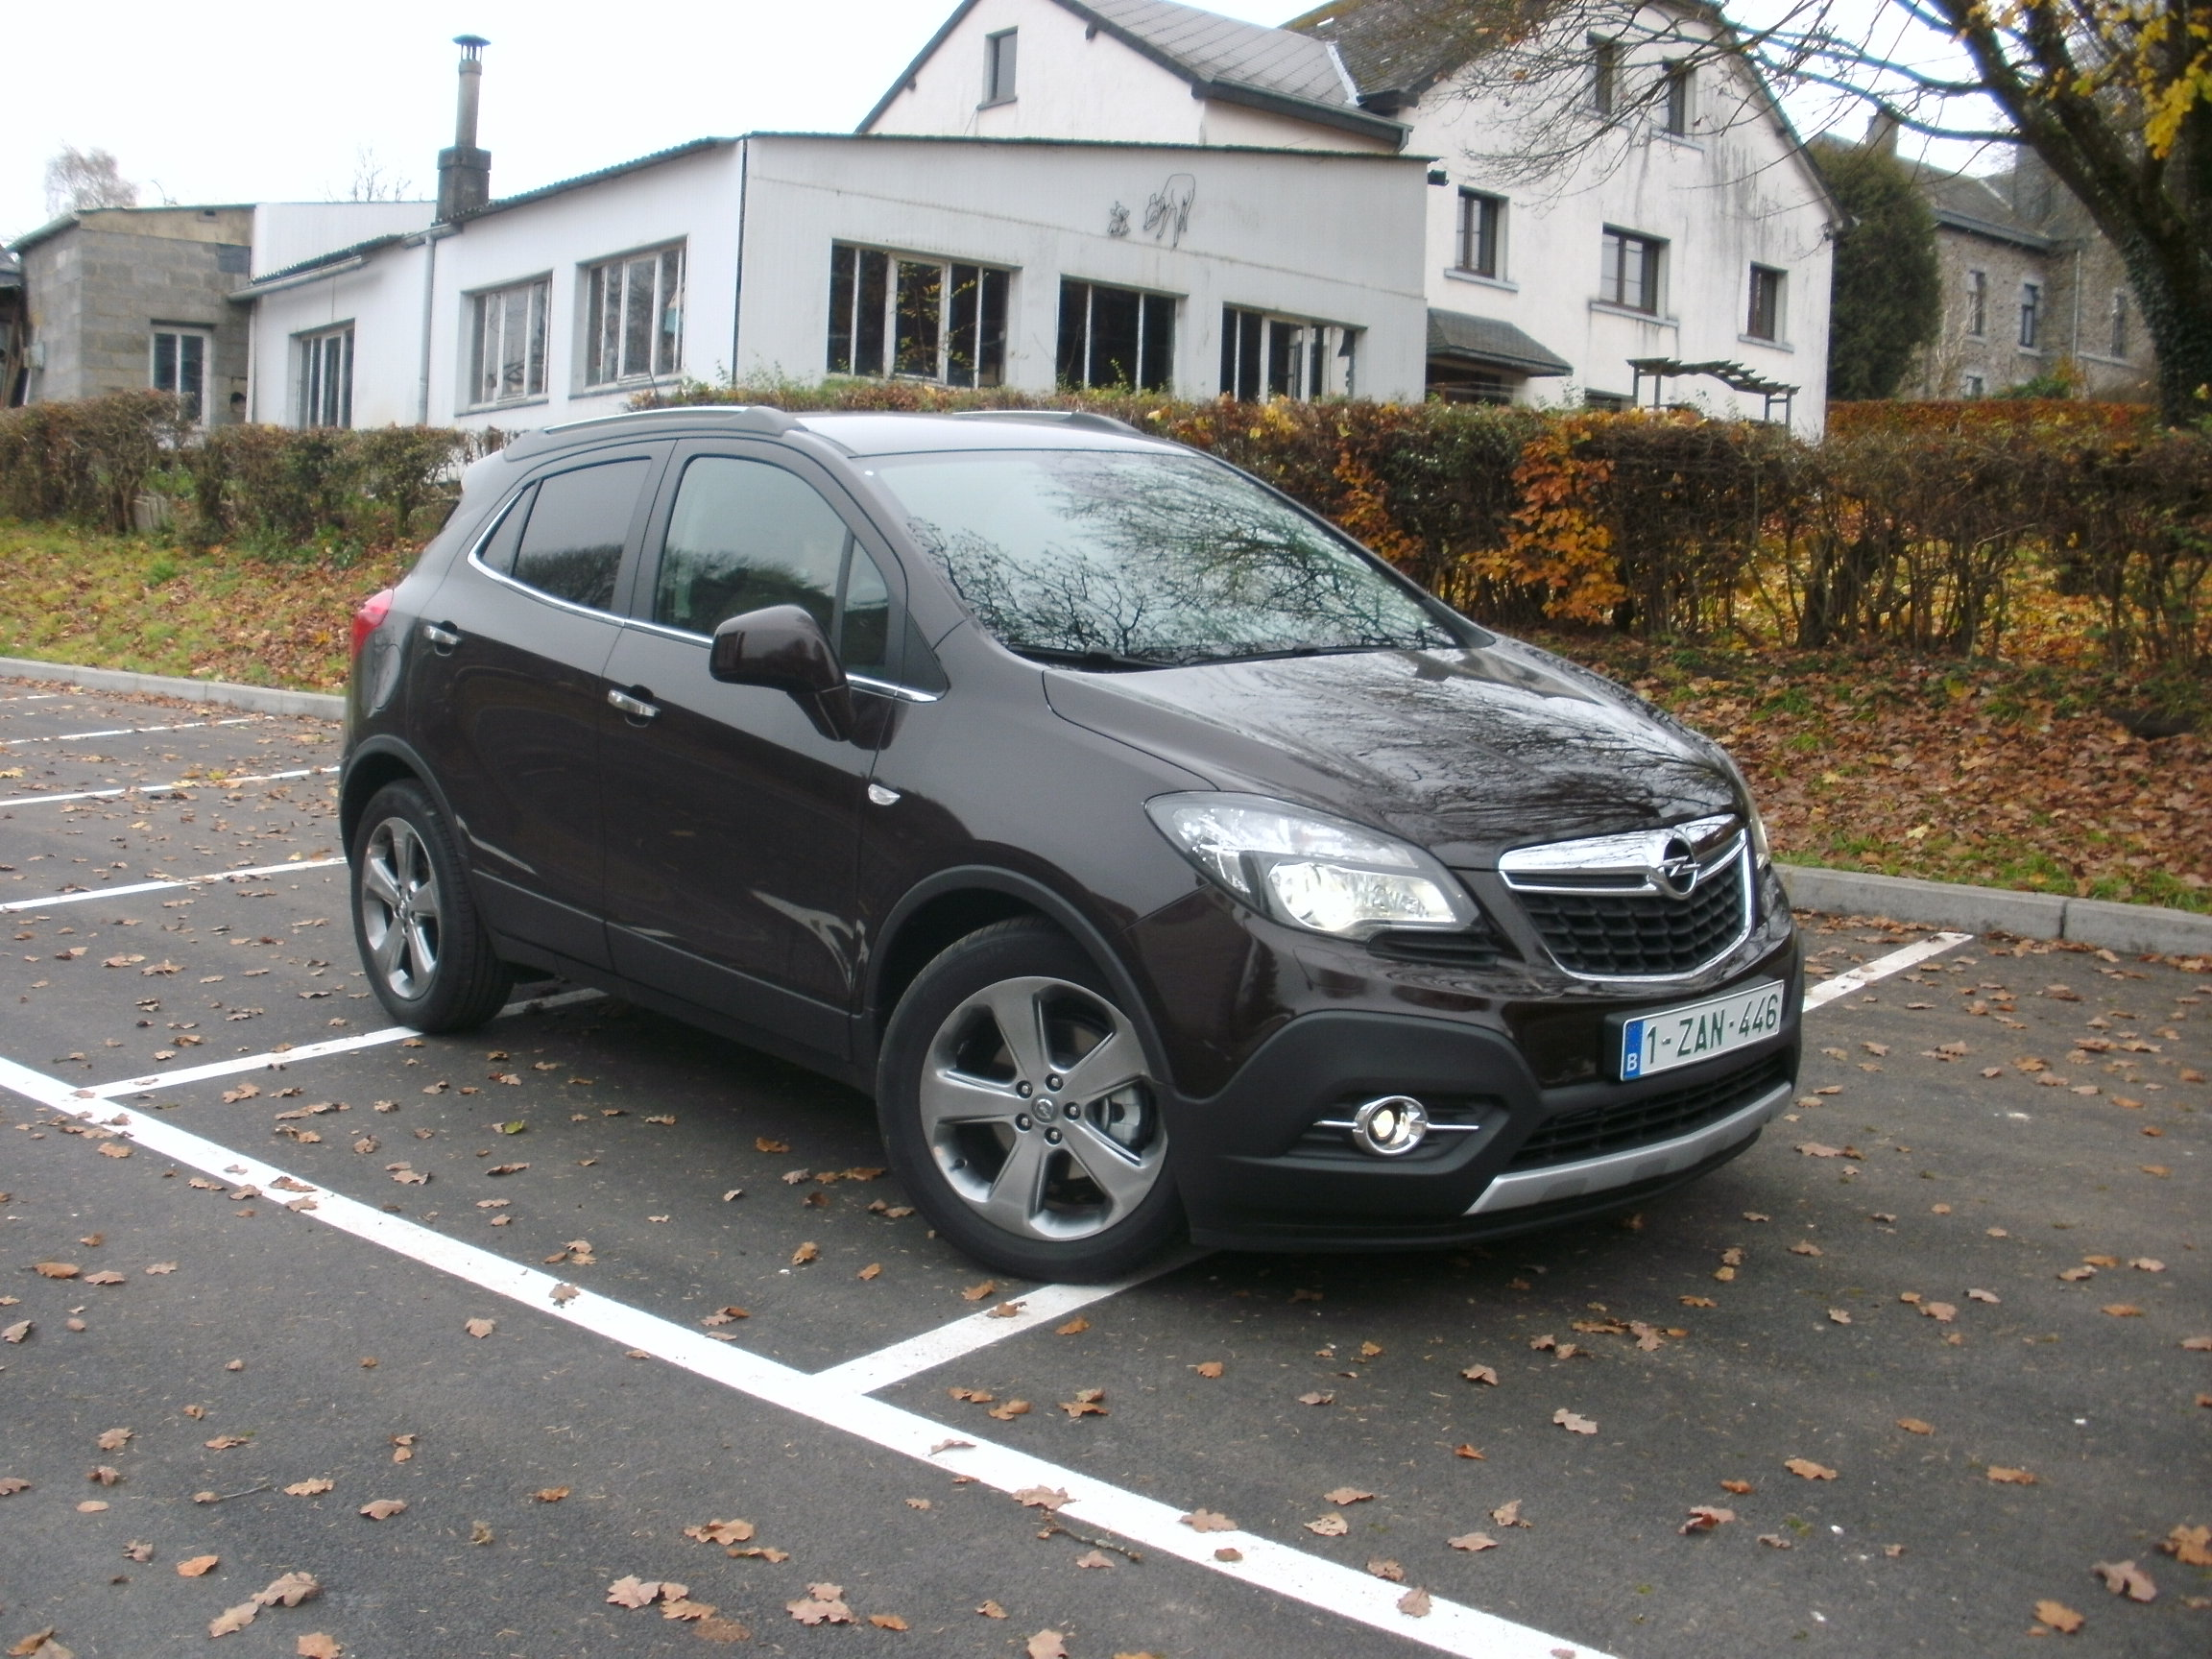 essai opel mokka 13 11 2012 010 opel mokka ditchleterrible photos club. Black Bedroom Furniture Sets. Home Design Ideas